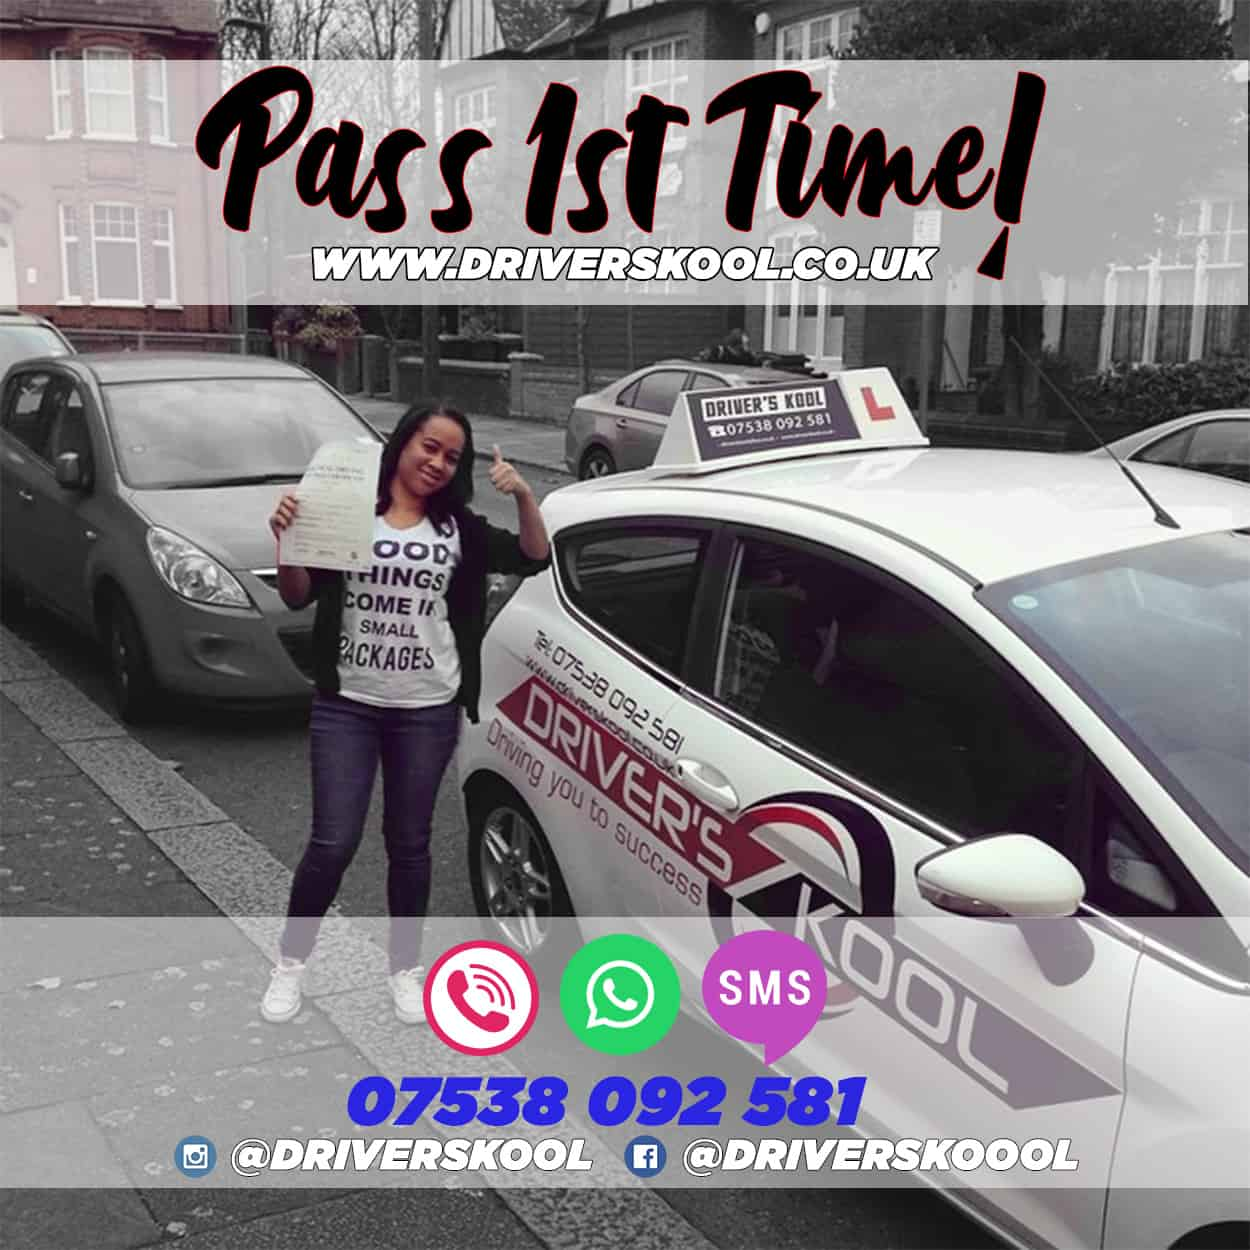 AUTOMATIC INTENSIVE DRIVING COURSES